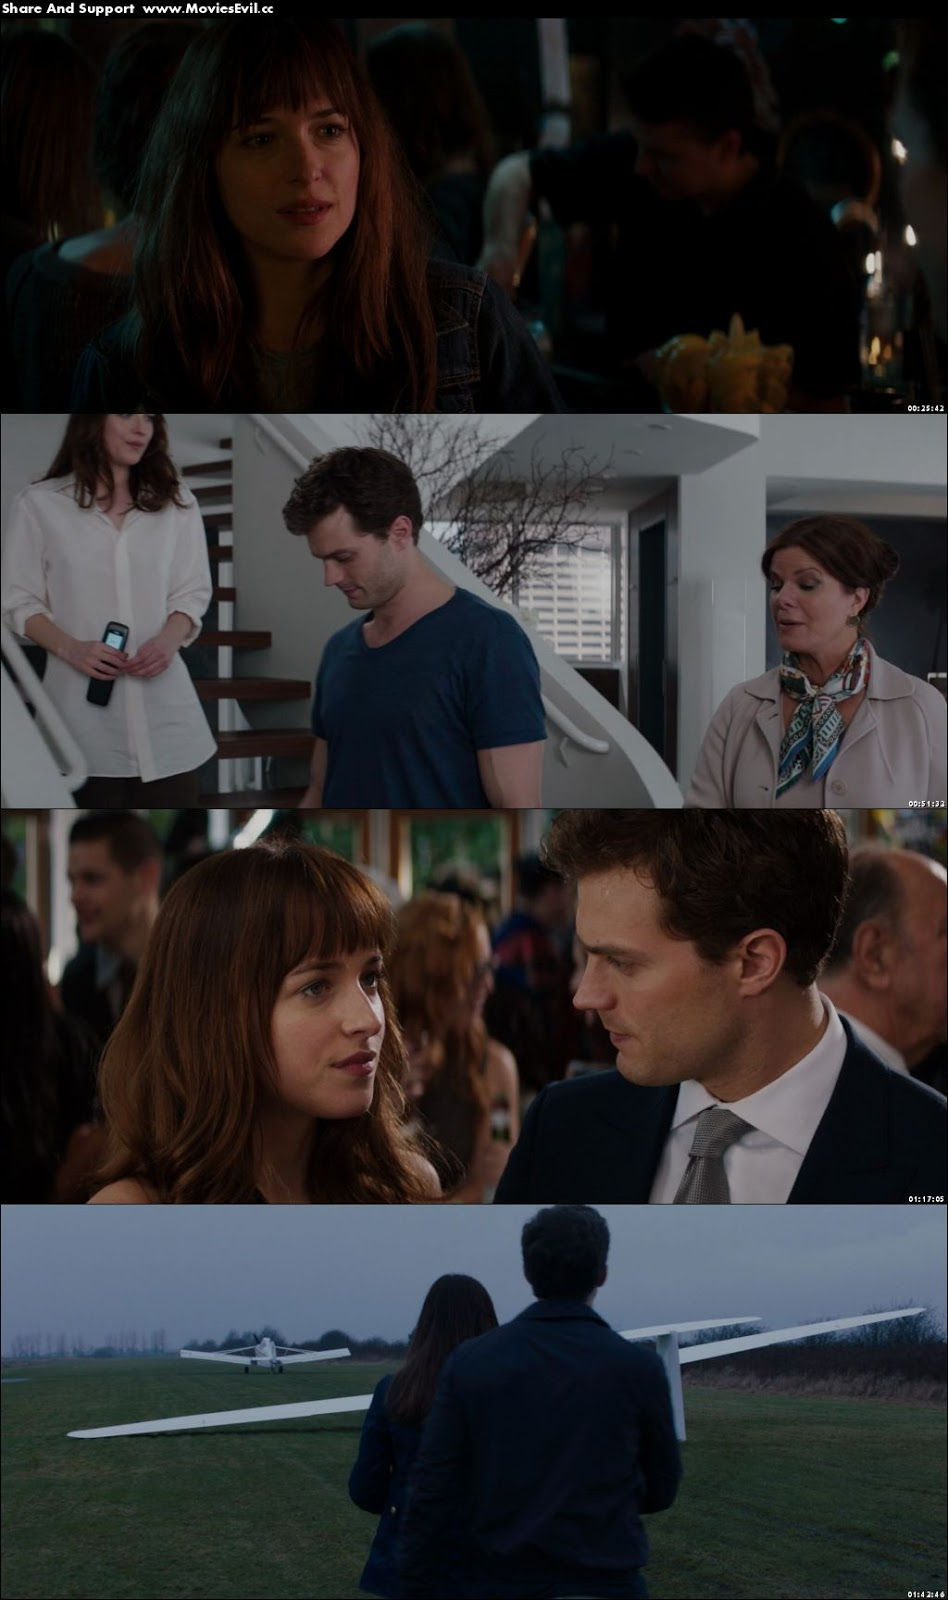 Fifty Shades of Grey 2015 UNRATED 1080p BluRay x264,Fifty Shades of Grey 2015 full movie download,Fifty Shades of Grey 2015 direct link download,Fifty Shades of Grey 2015 movie free download 720pm 1080p Bluray,Fifty Shades of Grey 2015 full movie dual audio download,Fifty Shades of Grey 2015 hd film download, adult movies download,Fifty Shades of Grey 2015 khatrimaza download,Fifty Shades of Grey 2015 downloadhub download,Fifty Shades of Grey 2015 extramovies download